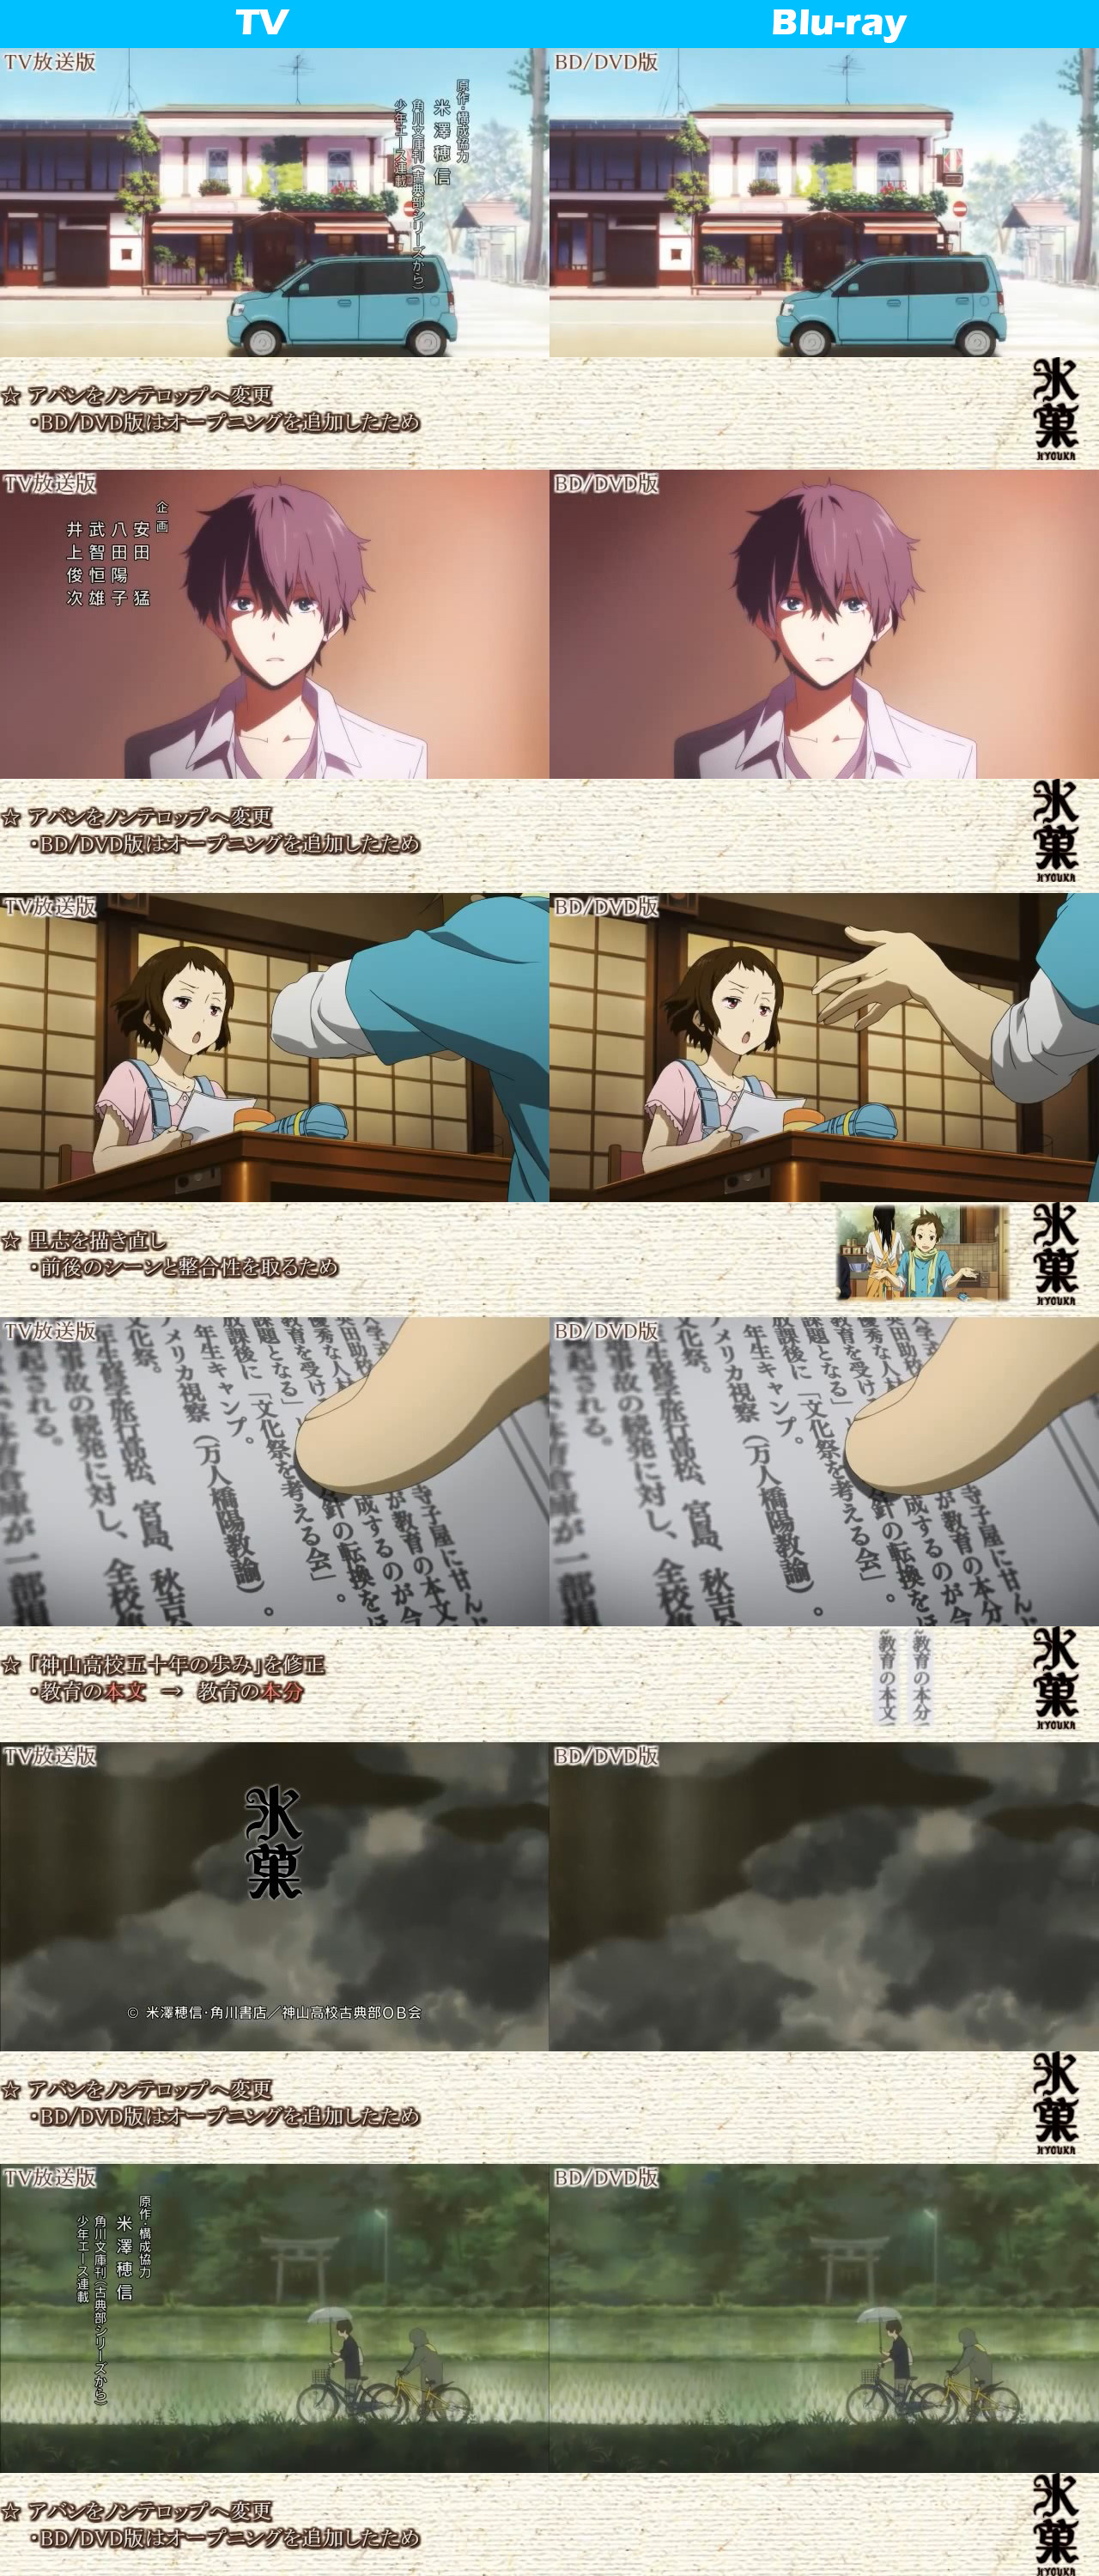 TV vs Blu-ray Comparison Hyouka anime 2